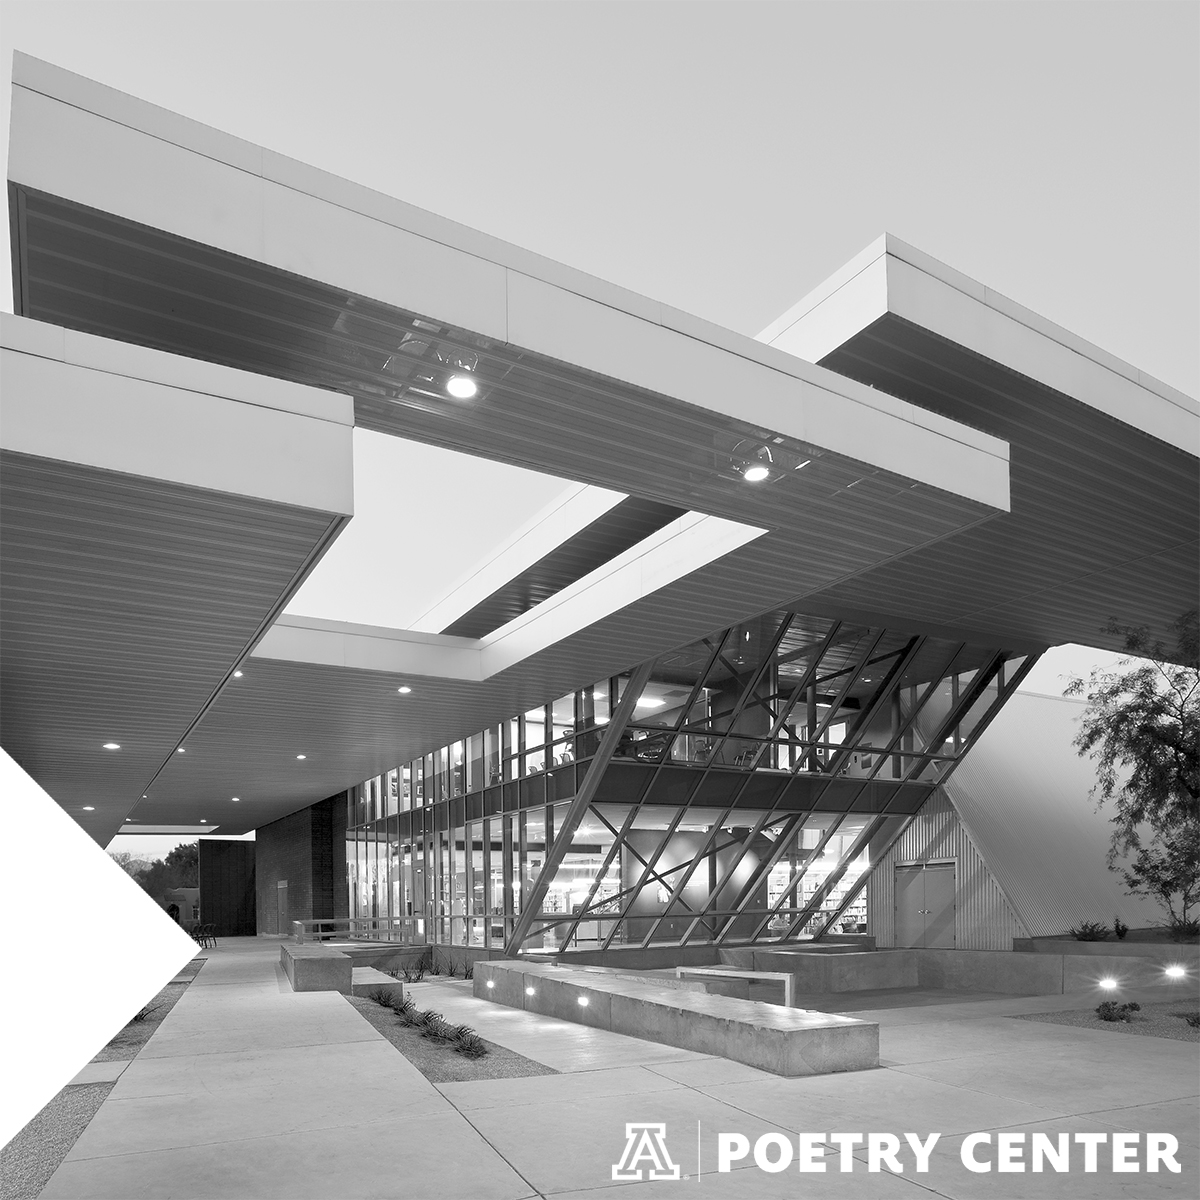 Black and white image of the Poetry Center